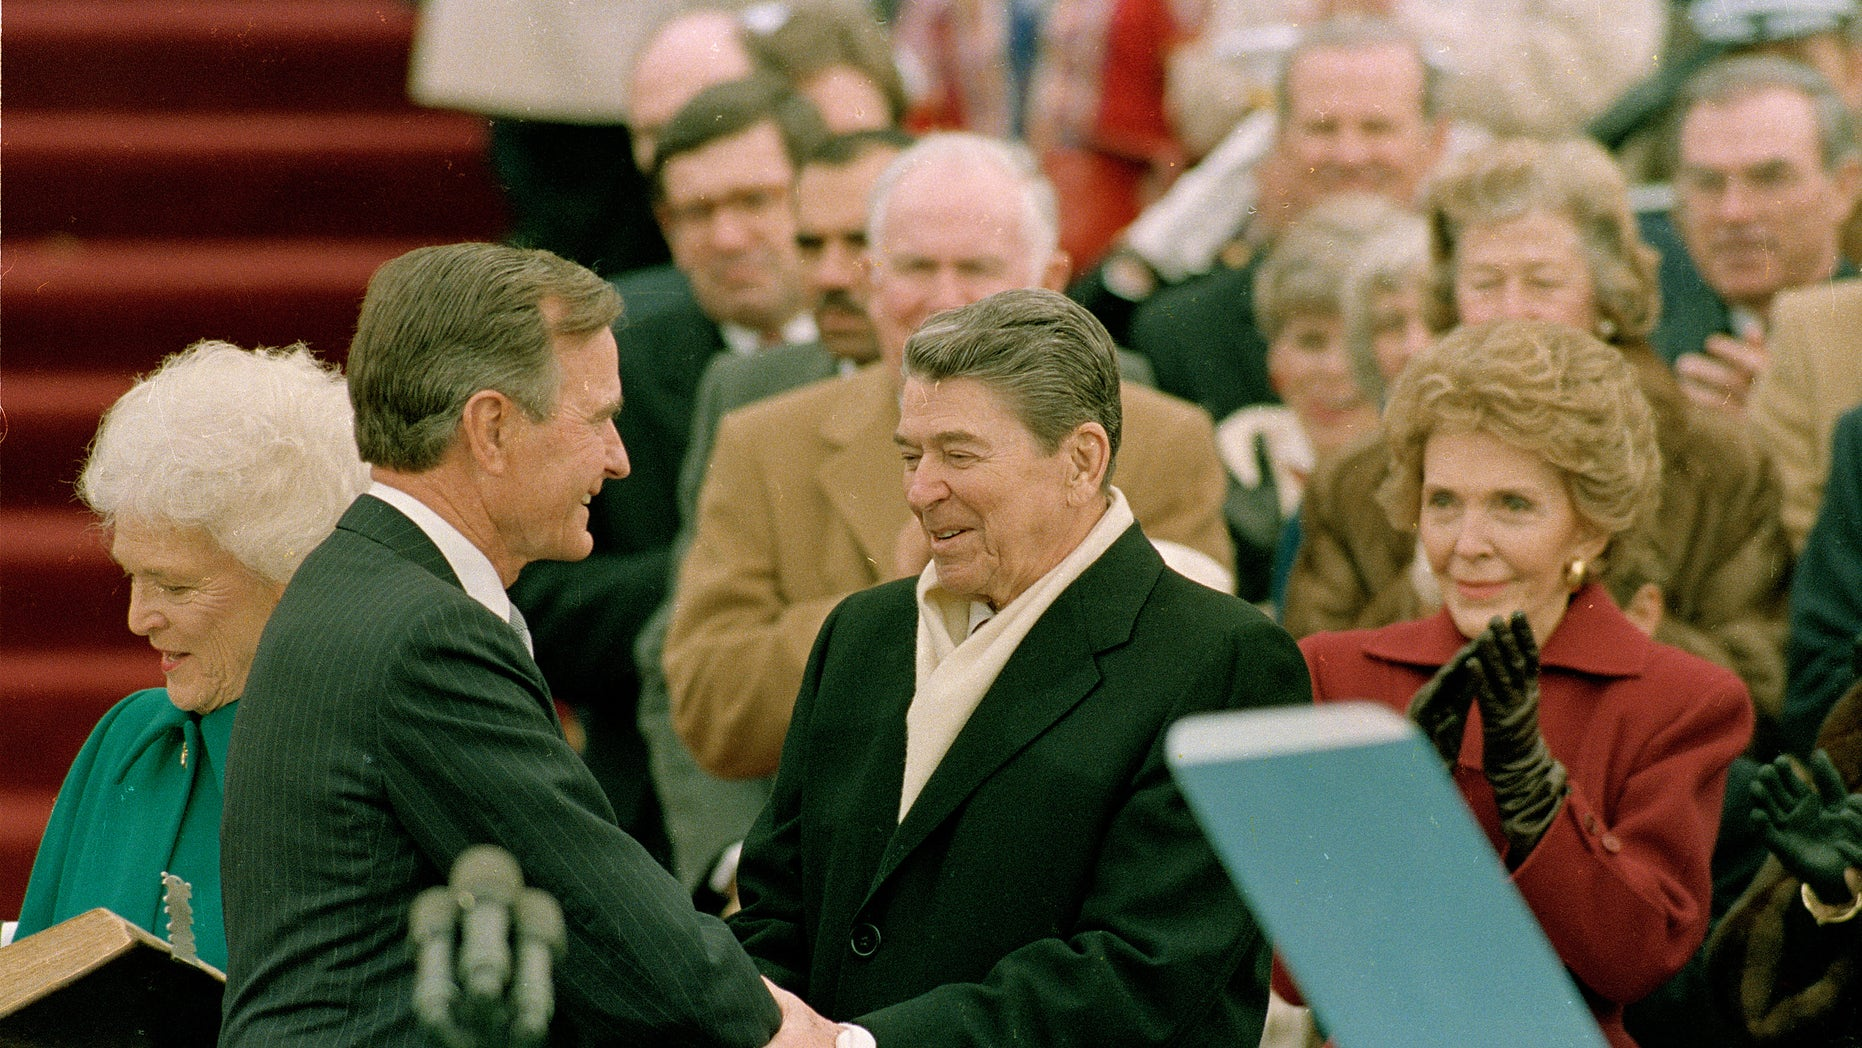 FILE - In this Jan. 20, 1989, photo, President George H.W. Bush, left, is congratulated by outgoing President Ronald Reagan after Bush took the oath of office as the 41st president of the United States on Capitol Hill in Washington. The inauguration of the U.S. president is traditionally a highly-scripted celebration, with seating charts, schedules, dress rehearsals, and planning committees that map each moment of the history-making day from start to finish. But sometimes the unexpected happens. Bush was inaugurated on the 200th anniversary of the presidency, and so one of the two Bibles on which he rested his hand during the oath of office was the same Bible that George Washington used in 1789. The other Bible belonged to the Bush family. The day also marked the first friendly transition in 60 years. (AP Photo/Bob Daugherty)